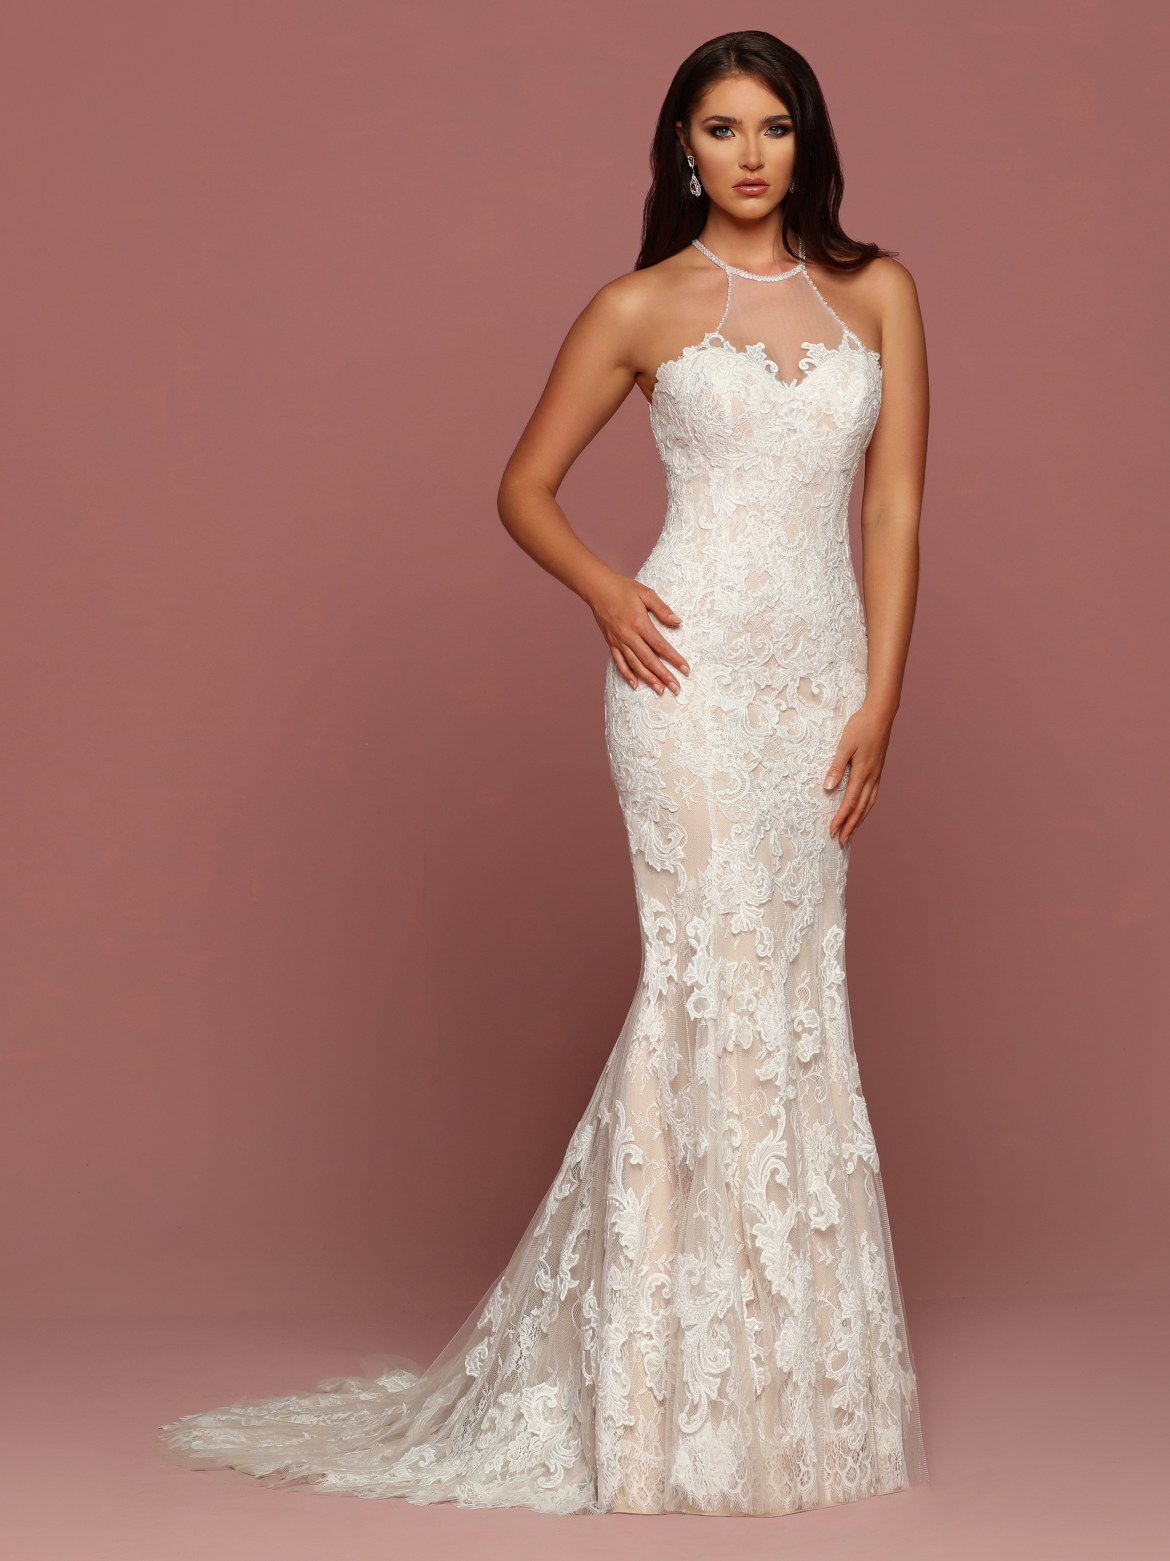 Fashion Focus: Halter Wedding Dress Collection